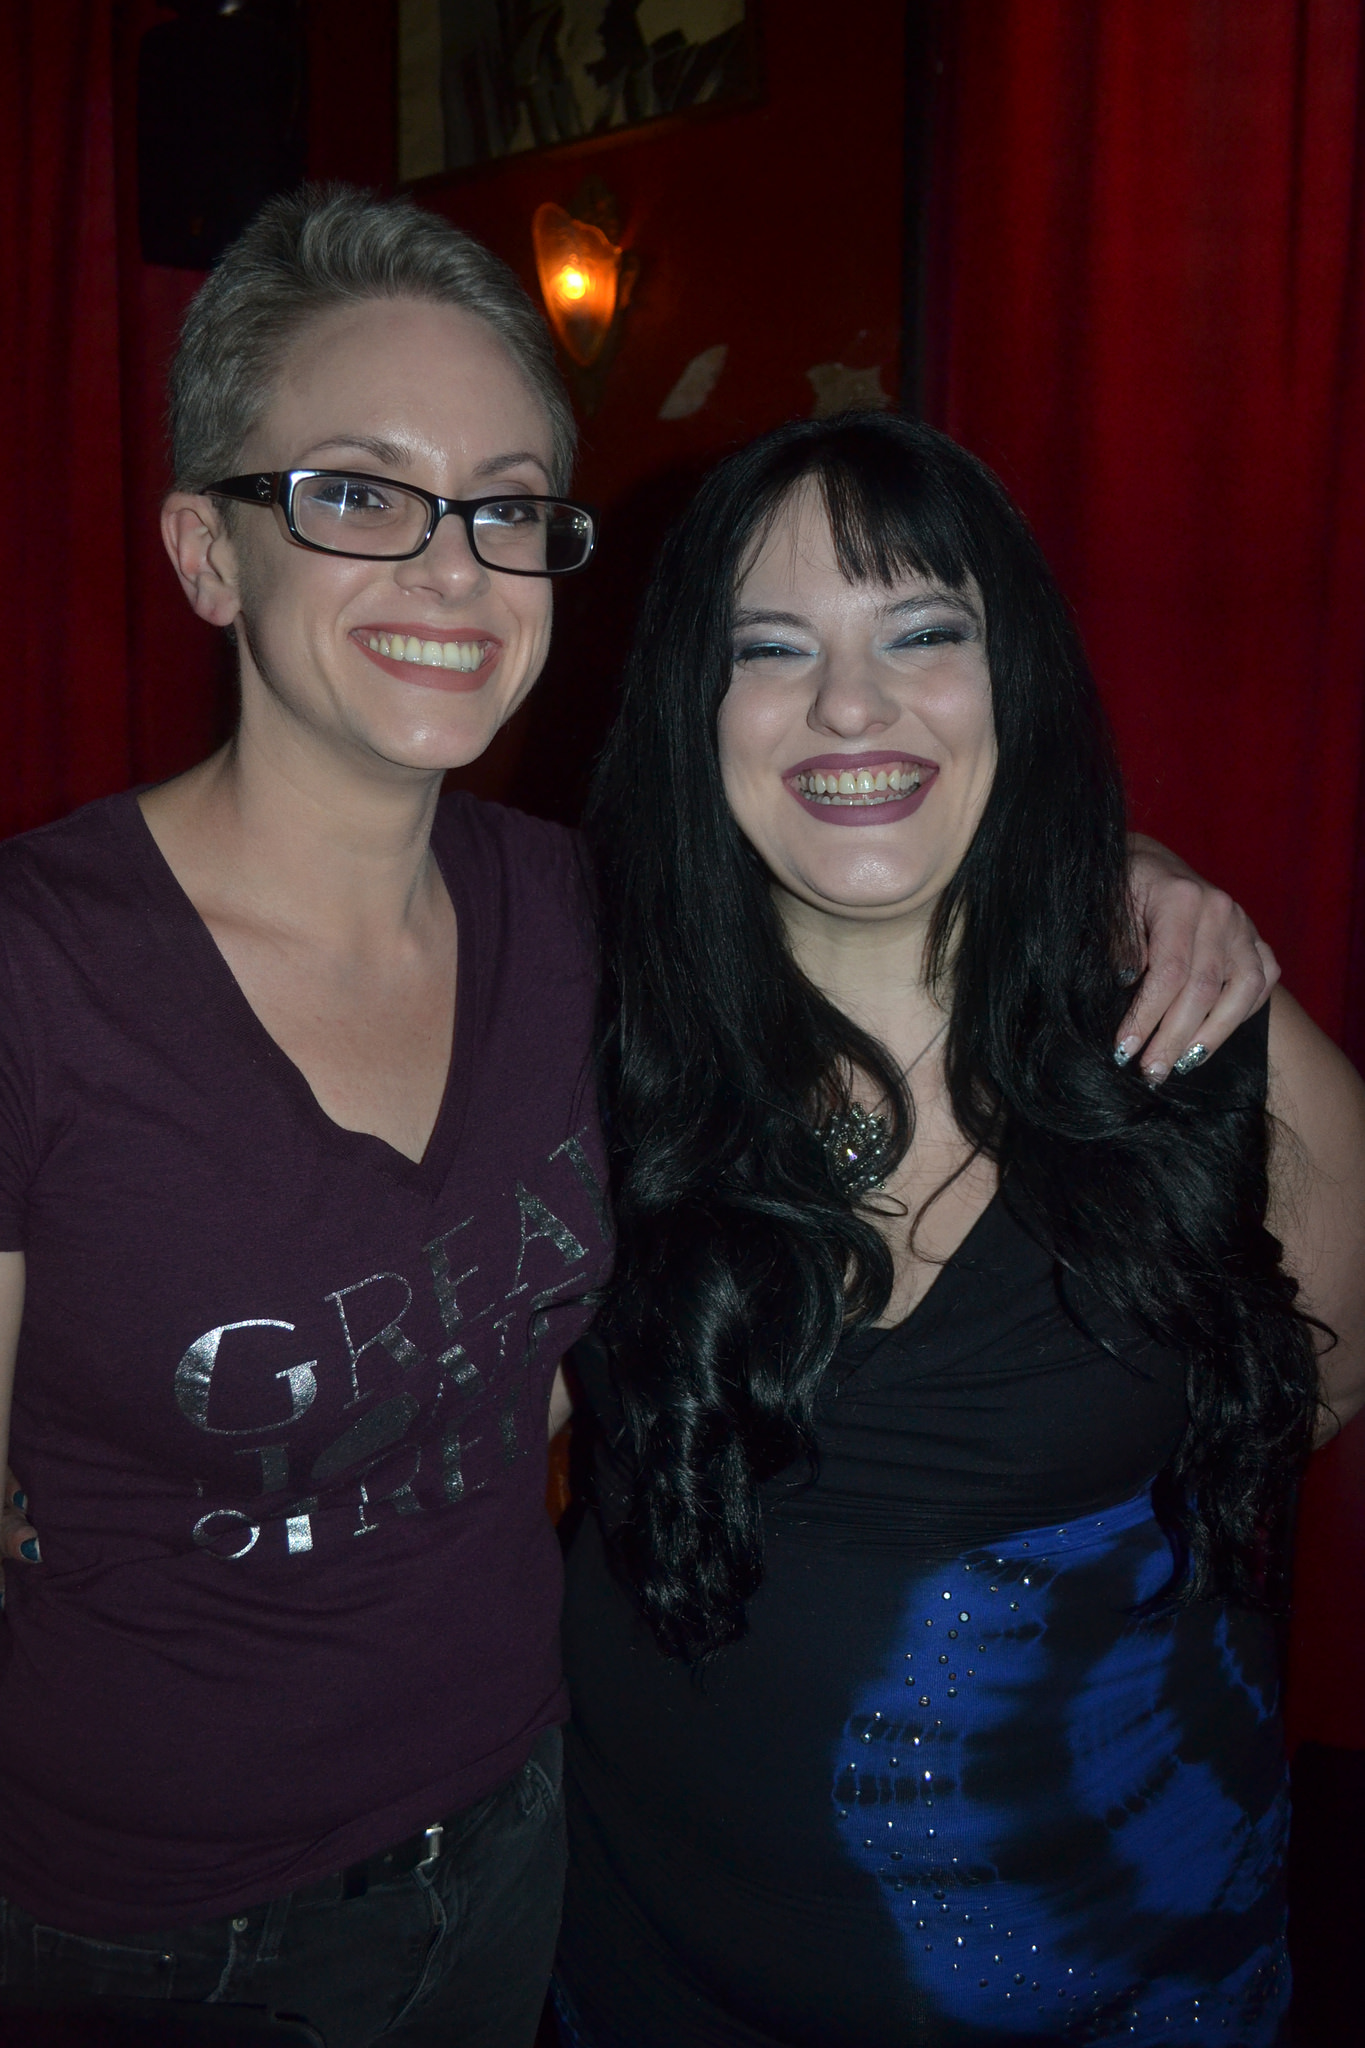 Photos from June 21 with Catherynne M. Valente and Sunny Moraine